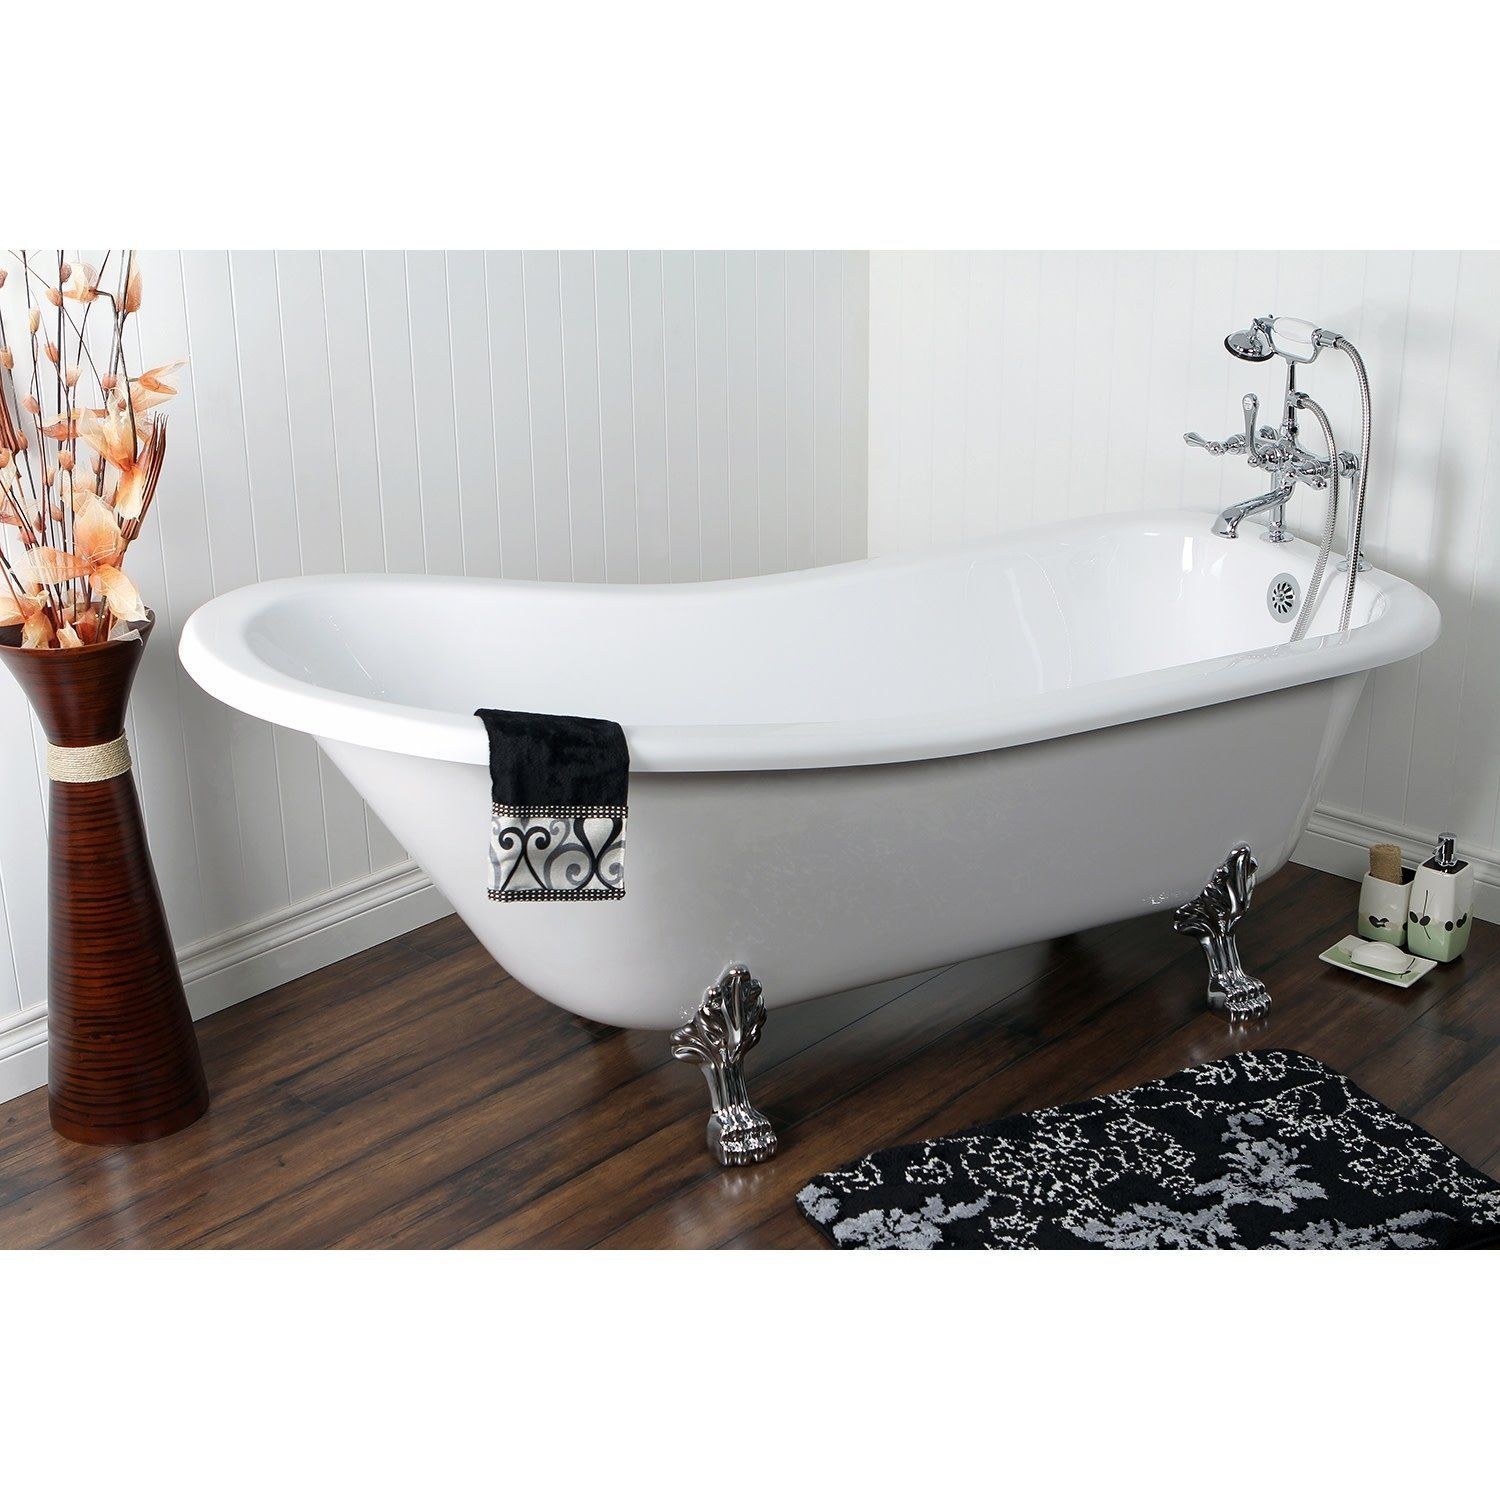 Slipper inch acrylic clawfoot tub with faucet combo upstairs